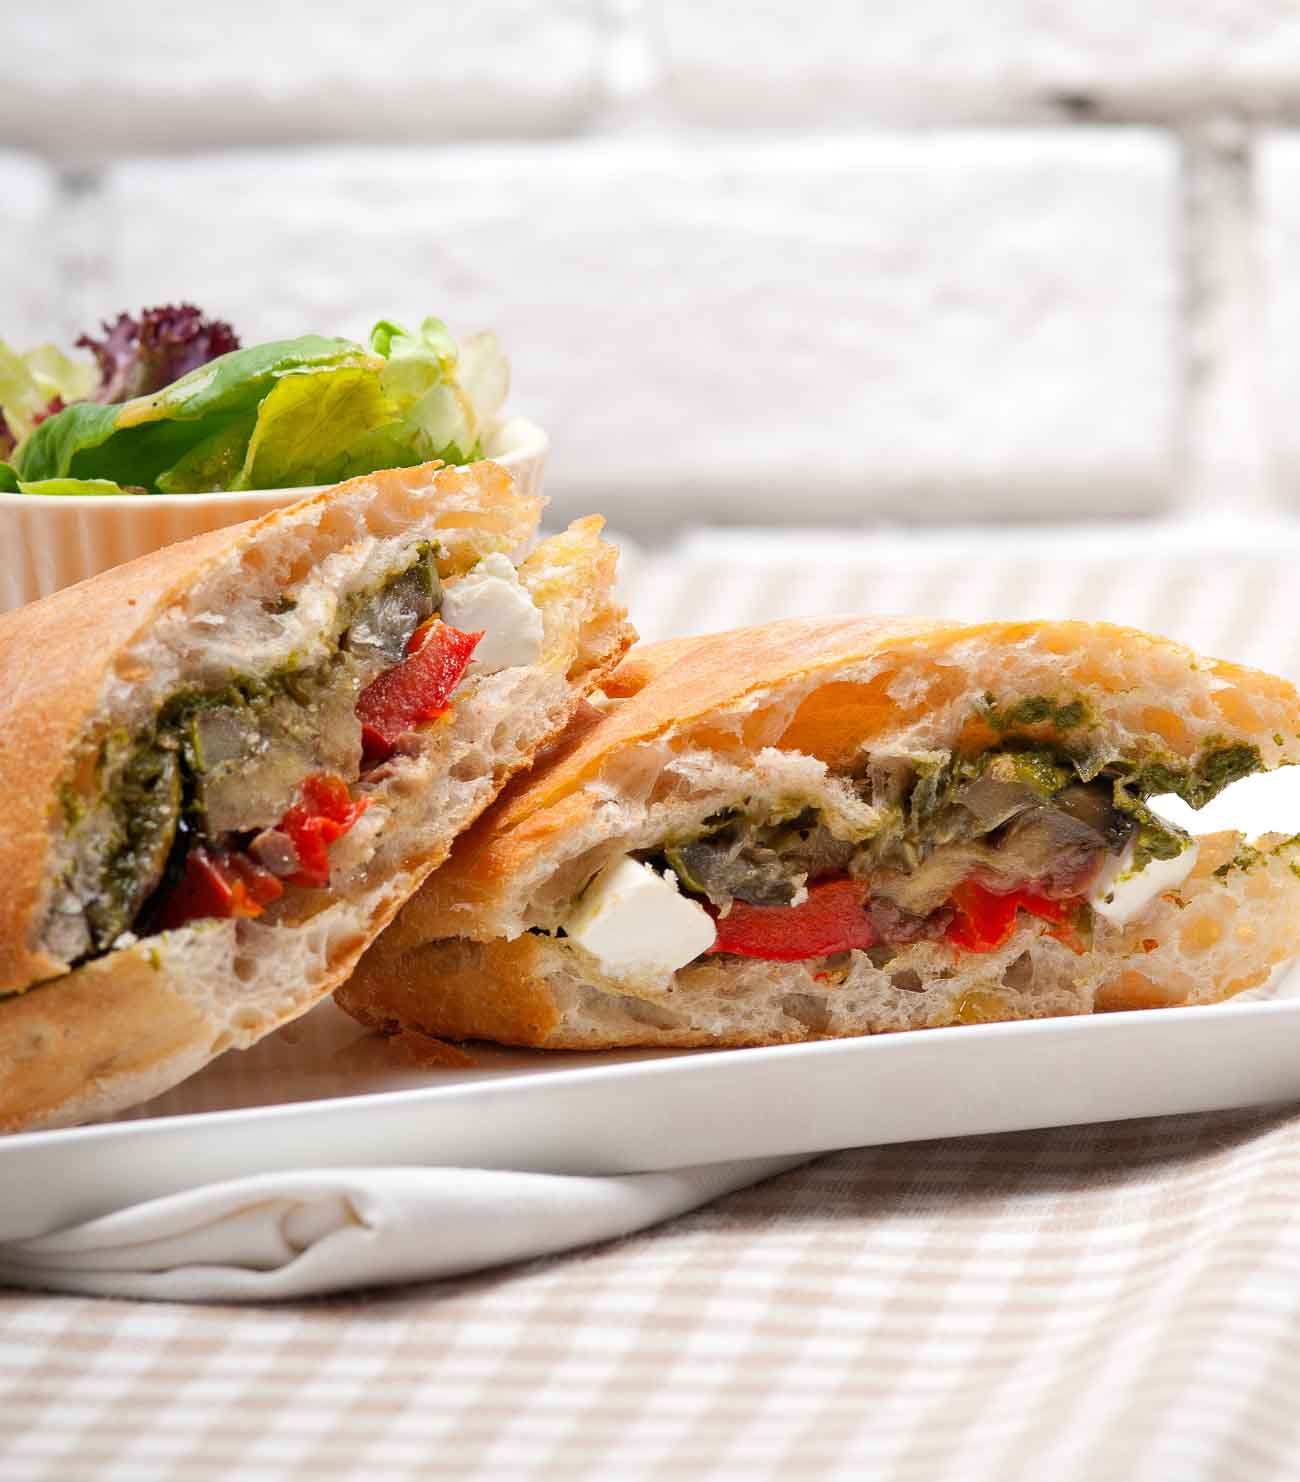 Roasted Vegetable Panini Sandwich With Feta Cheese Recipe